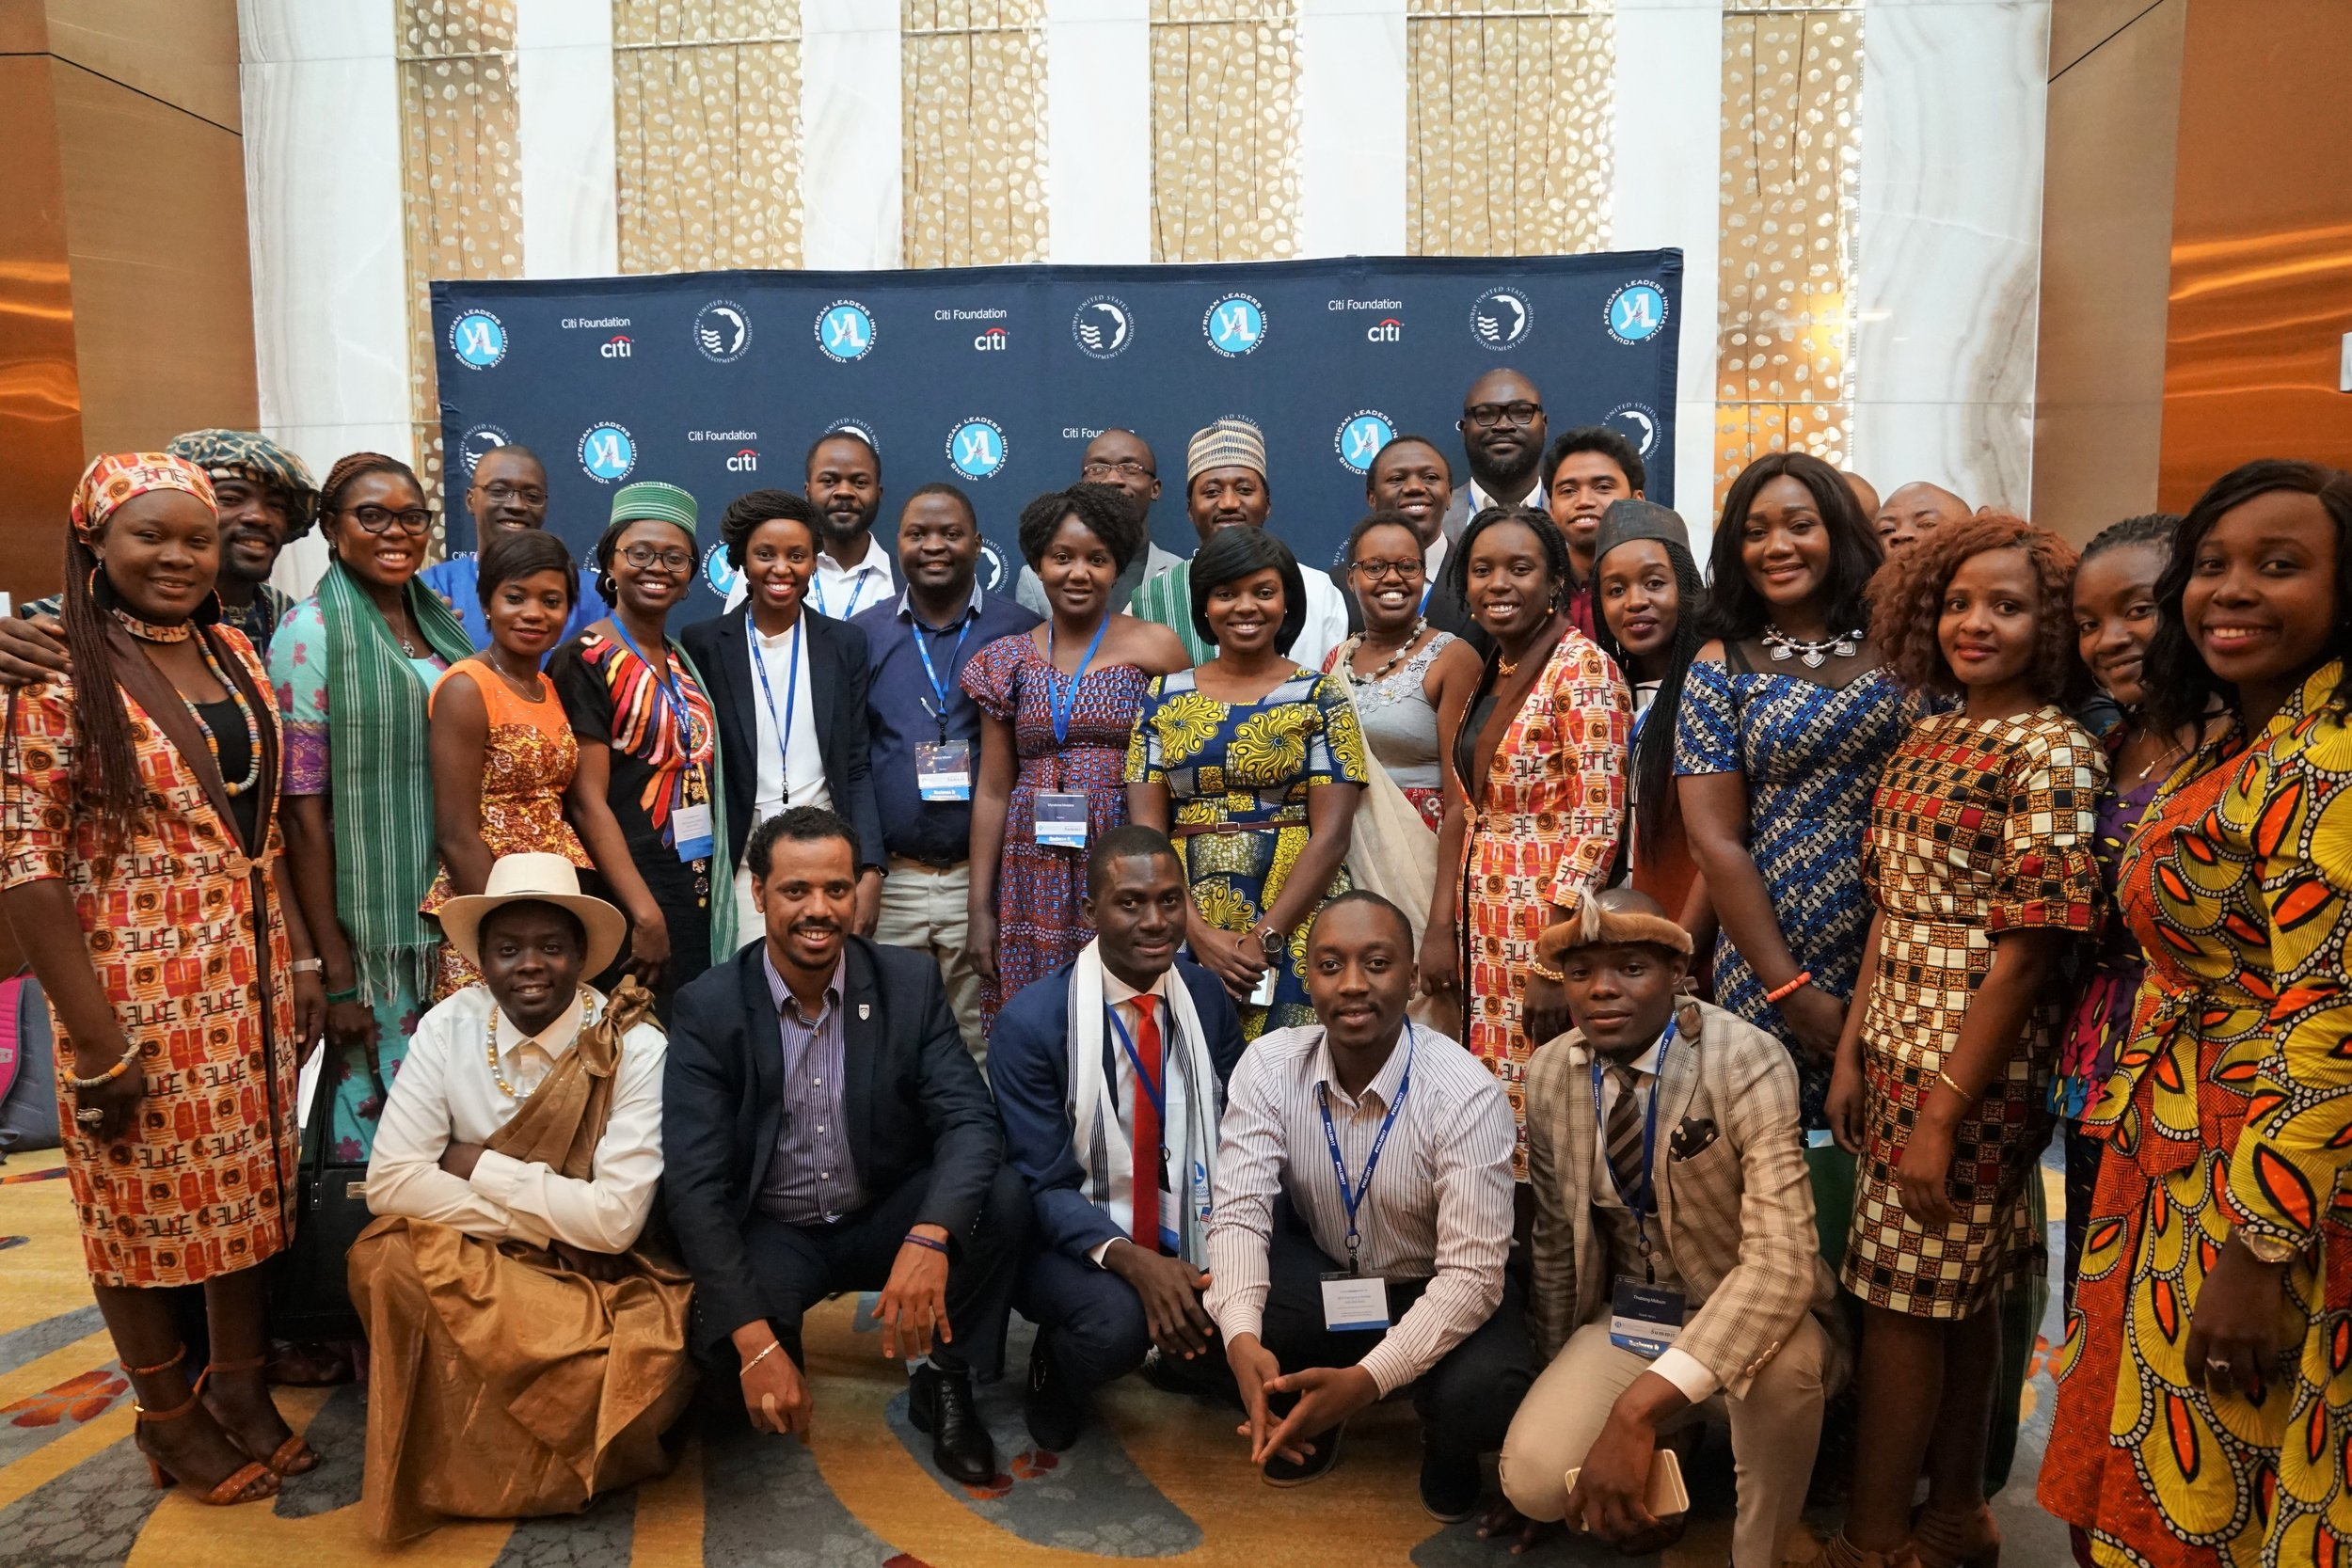 Meet the 2017 Mandela Washington Fellows to receive USADF seed capital funding. USADF will invest $375K in seed capital to help these young African leaders launch or expand their social enterprise. Click  here  to learn more about the 2017 winners.